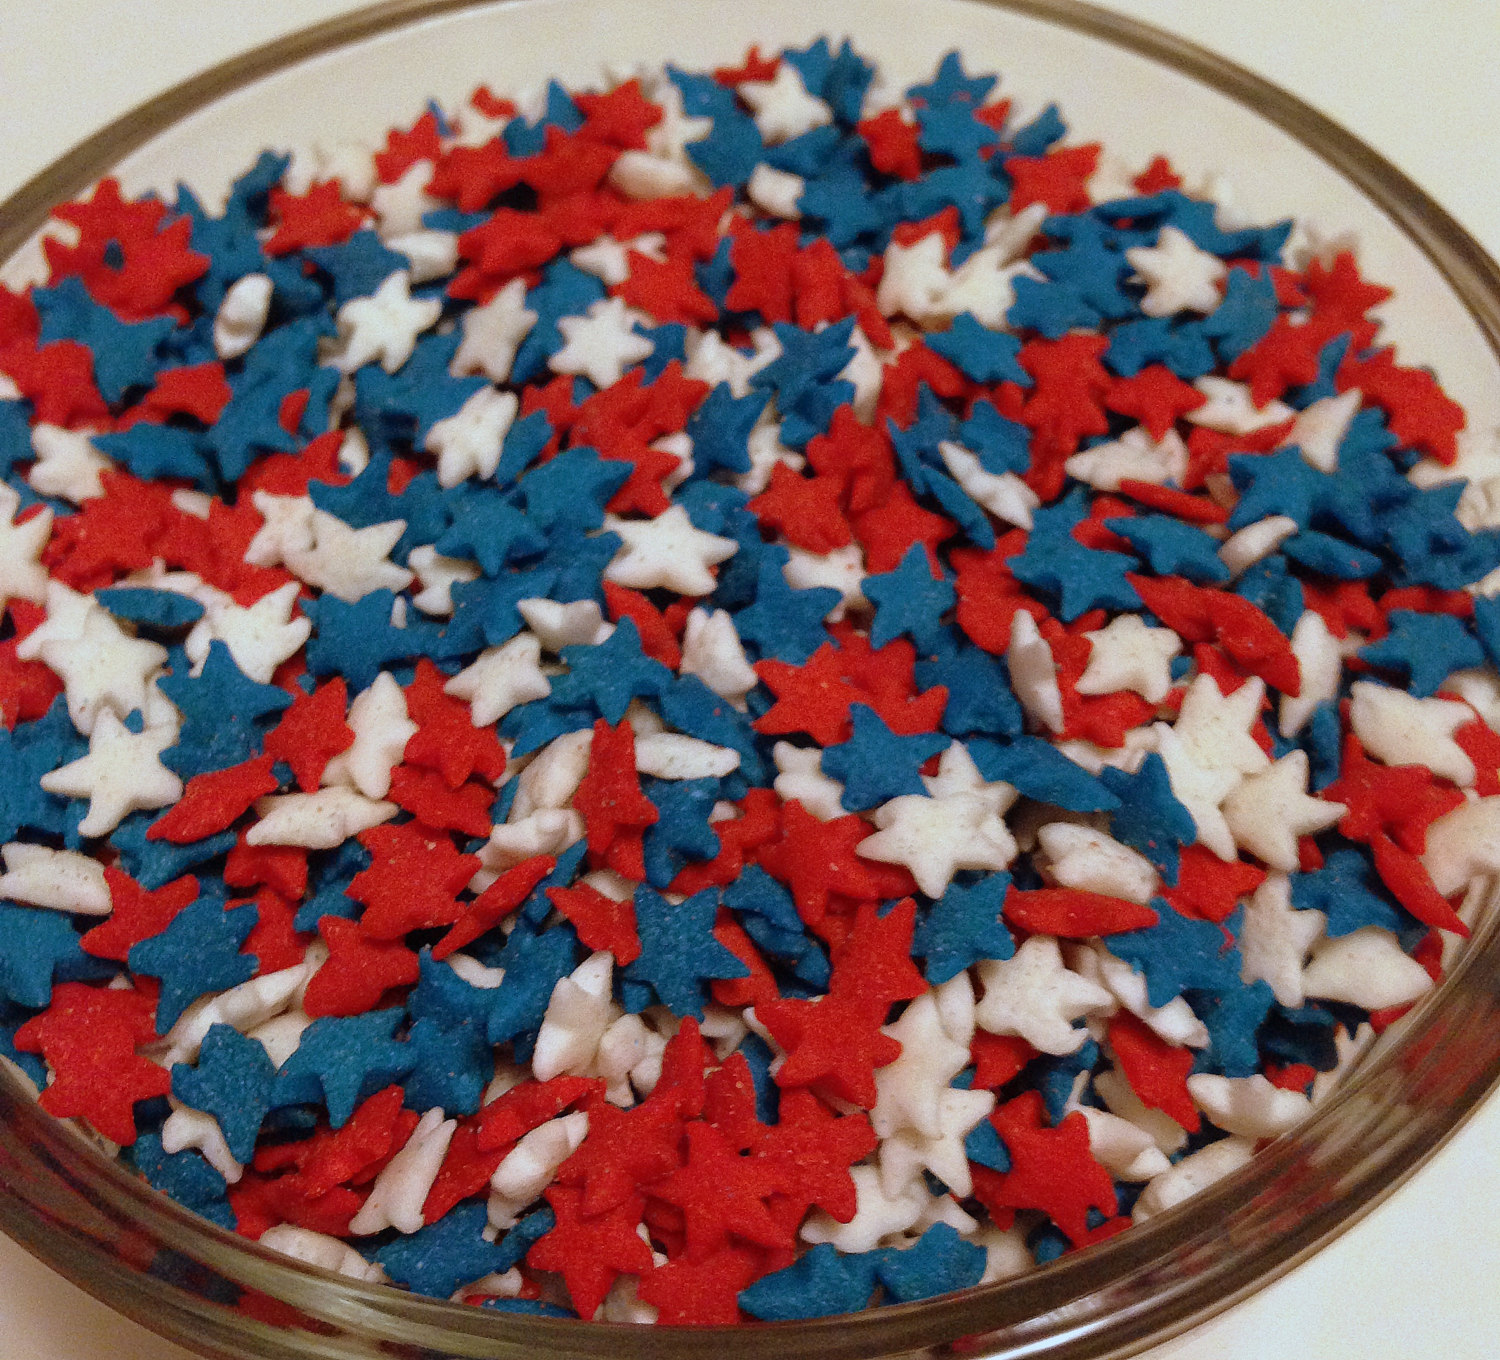 Red White and Blue Star Sprinkles